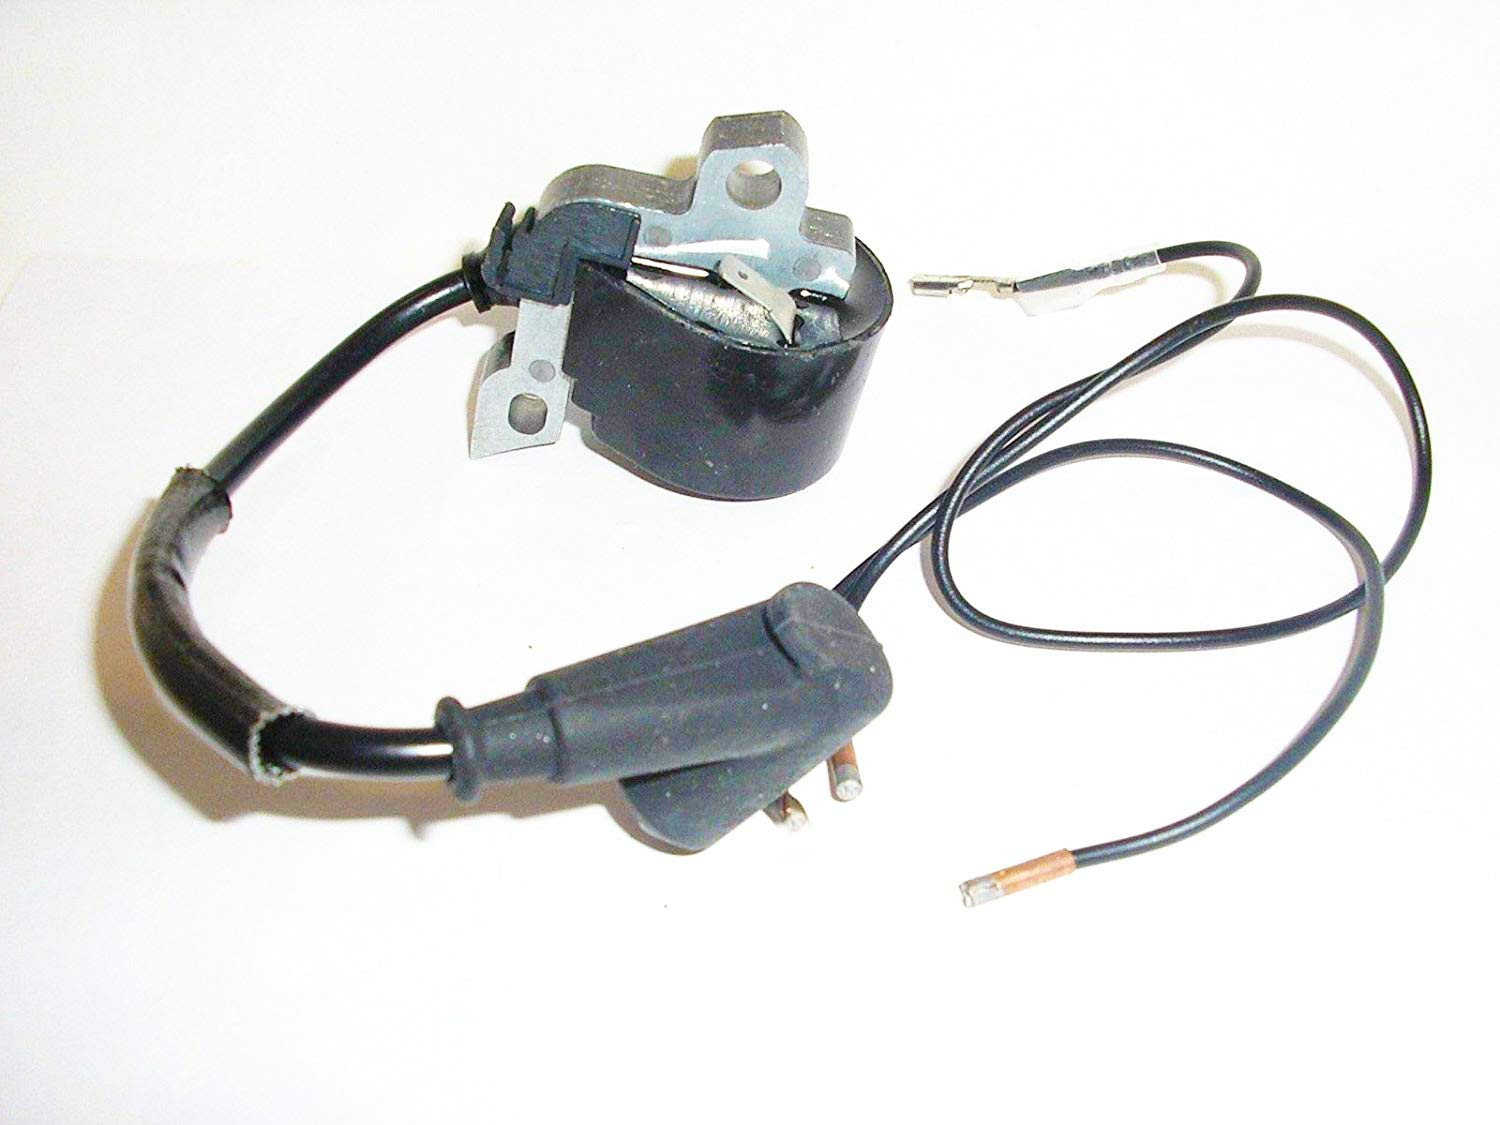 Stihl 029, 028, 026, 036, MS290, 034, 038, 044 Ignition Coil Replaces OEM # 0000-400-1300, Includes Switch Wires! Ships from USA